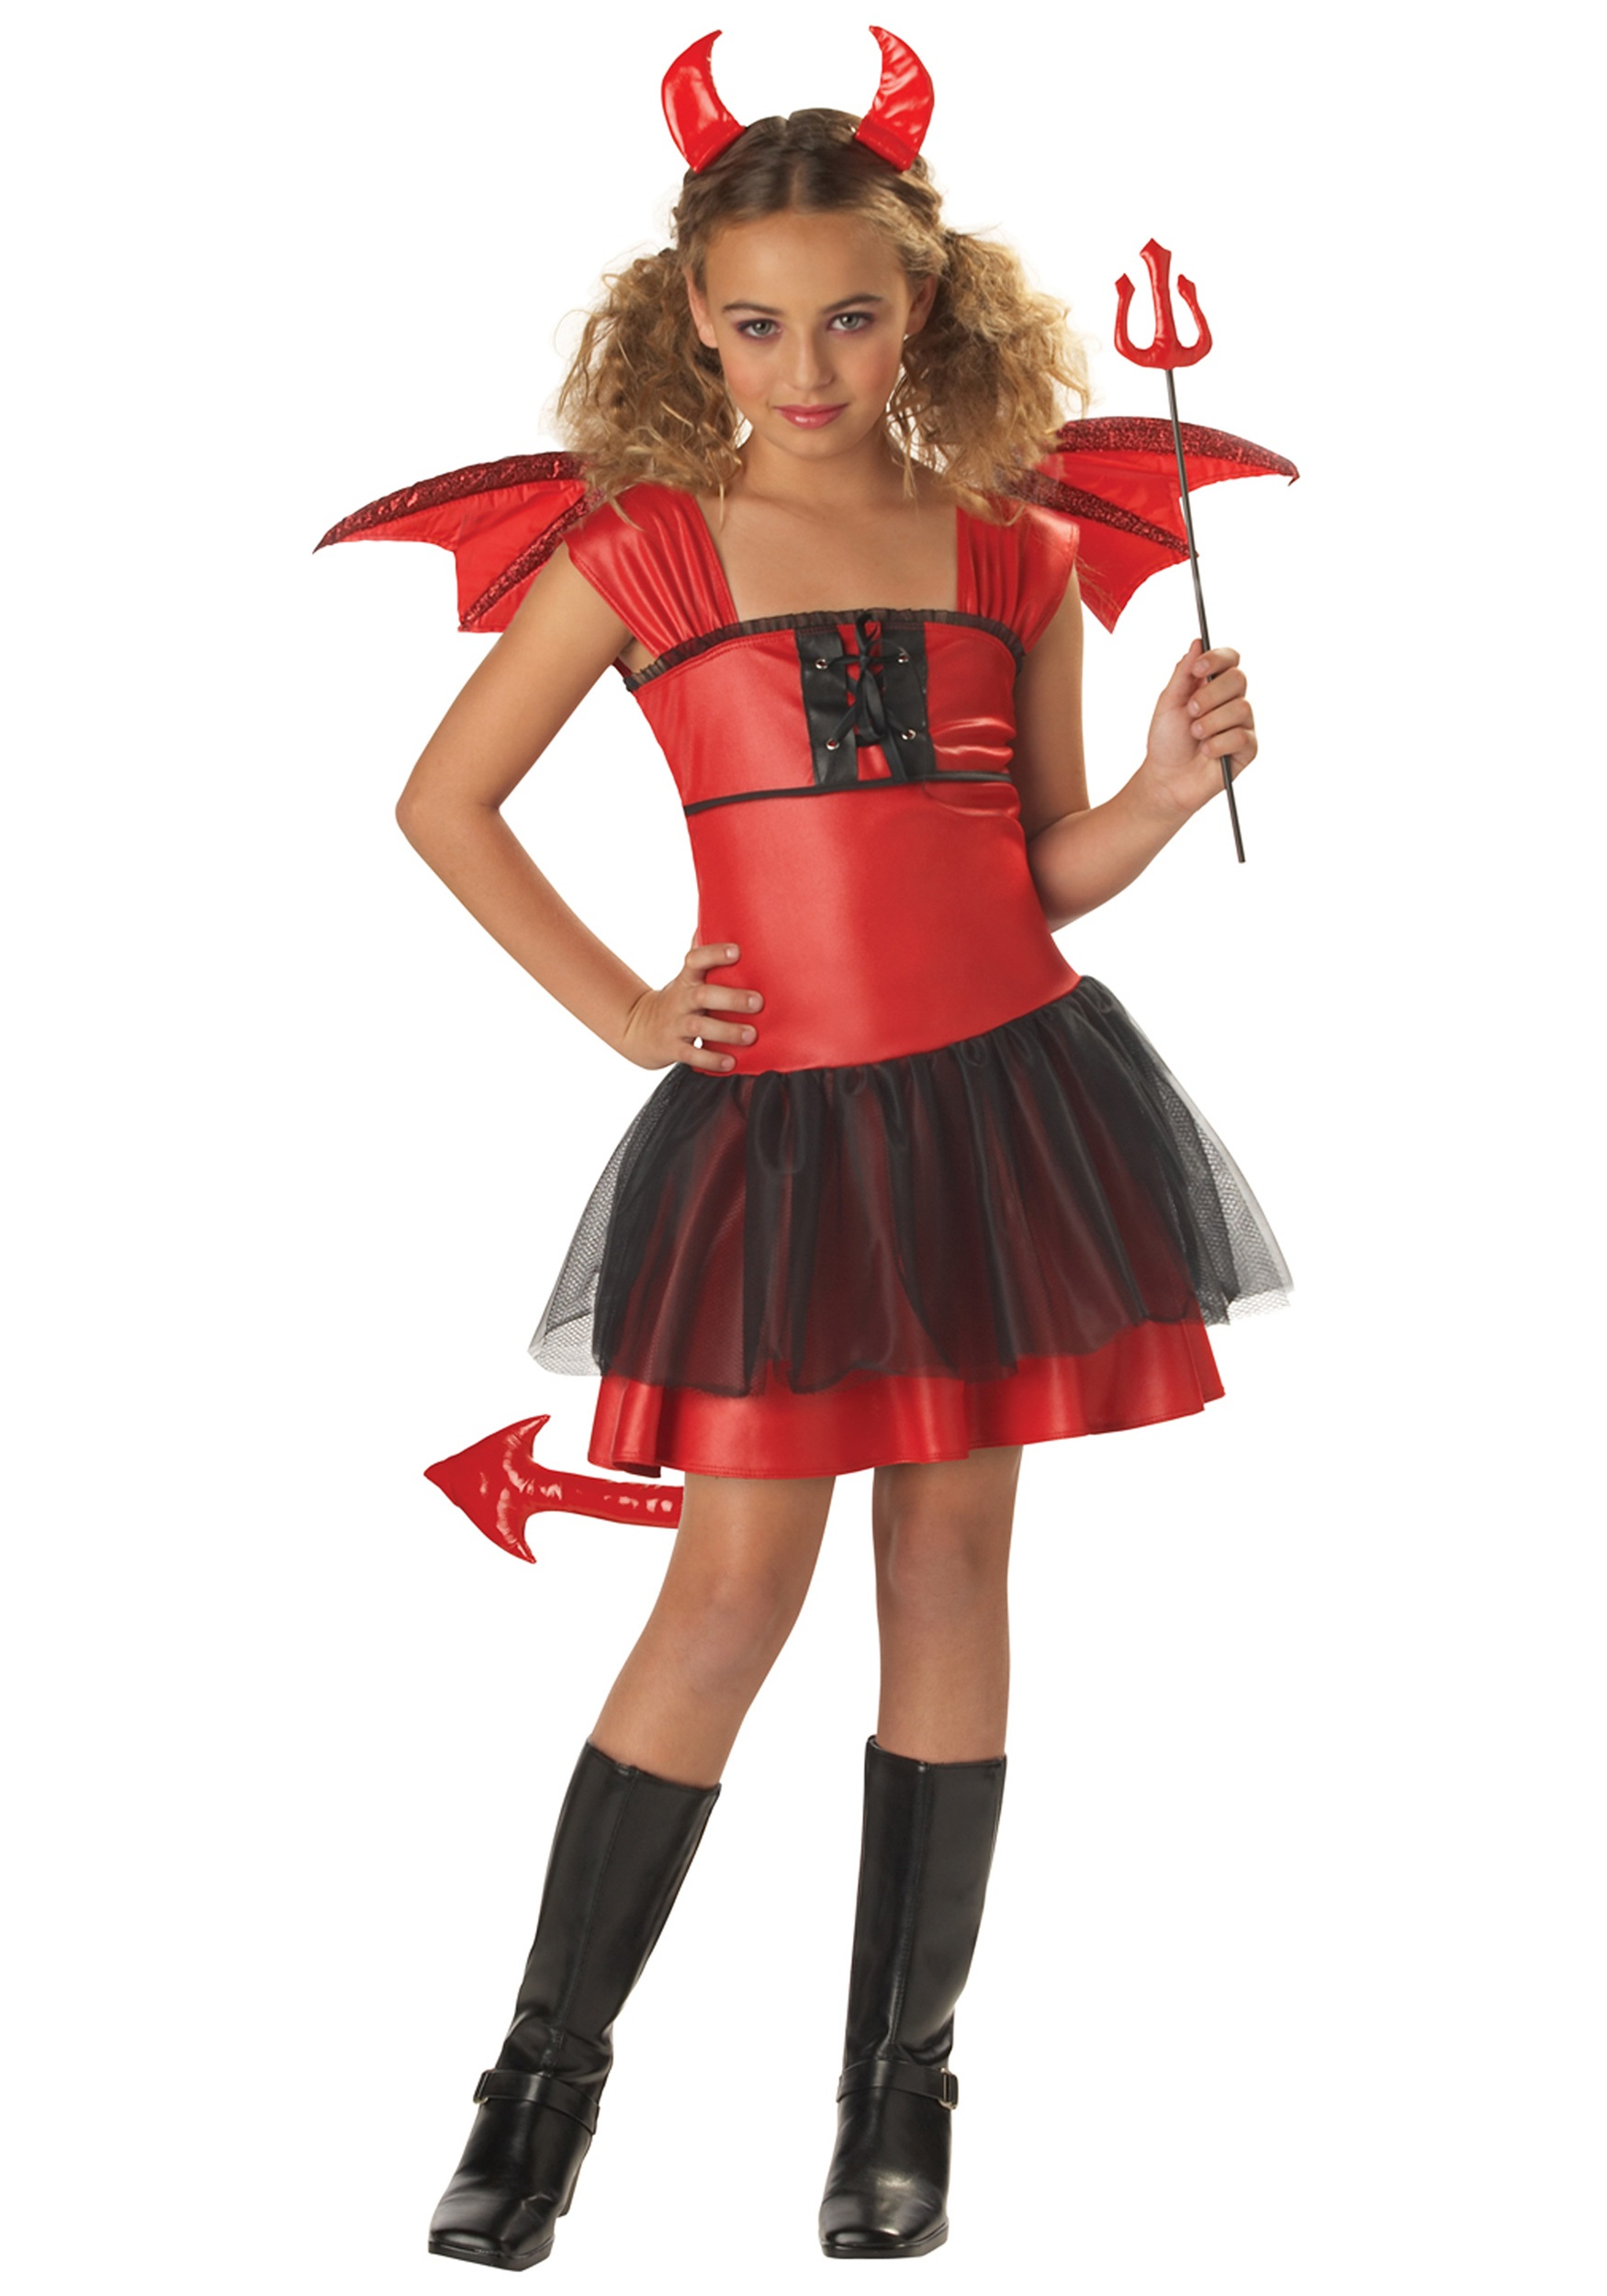 Halloween Costumes amp Accessories  The Halloween Shop at